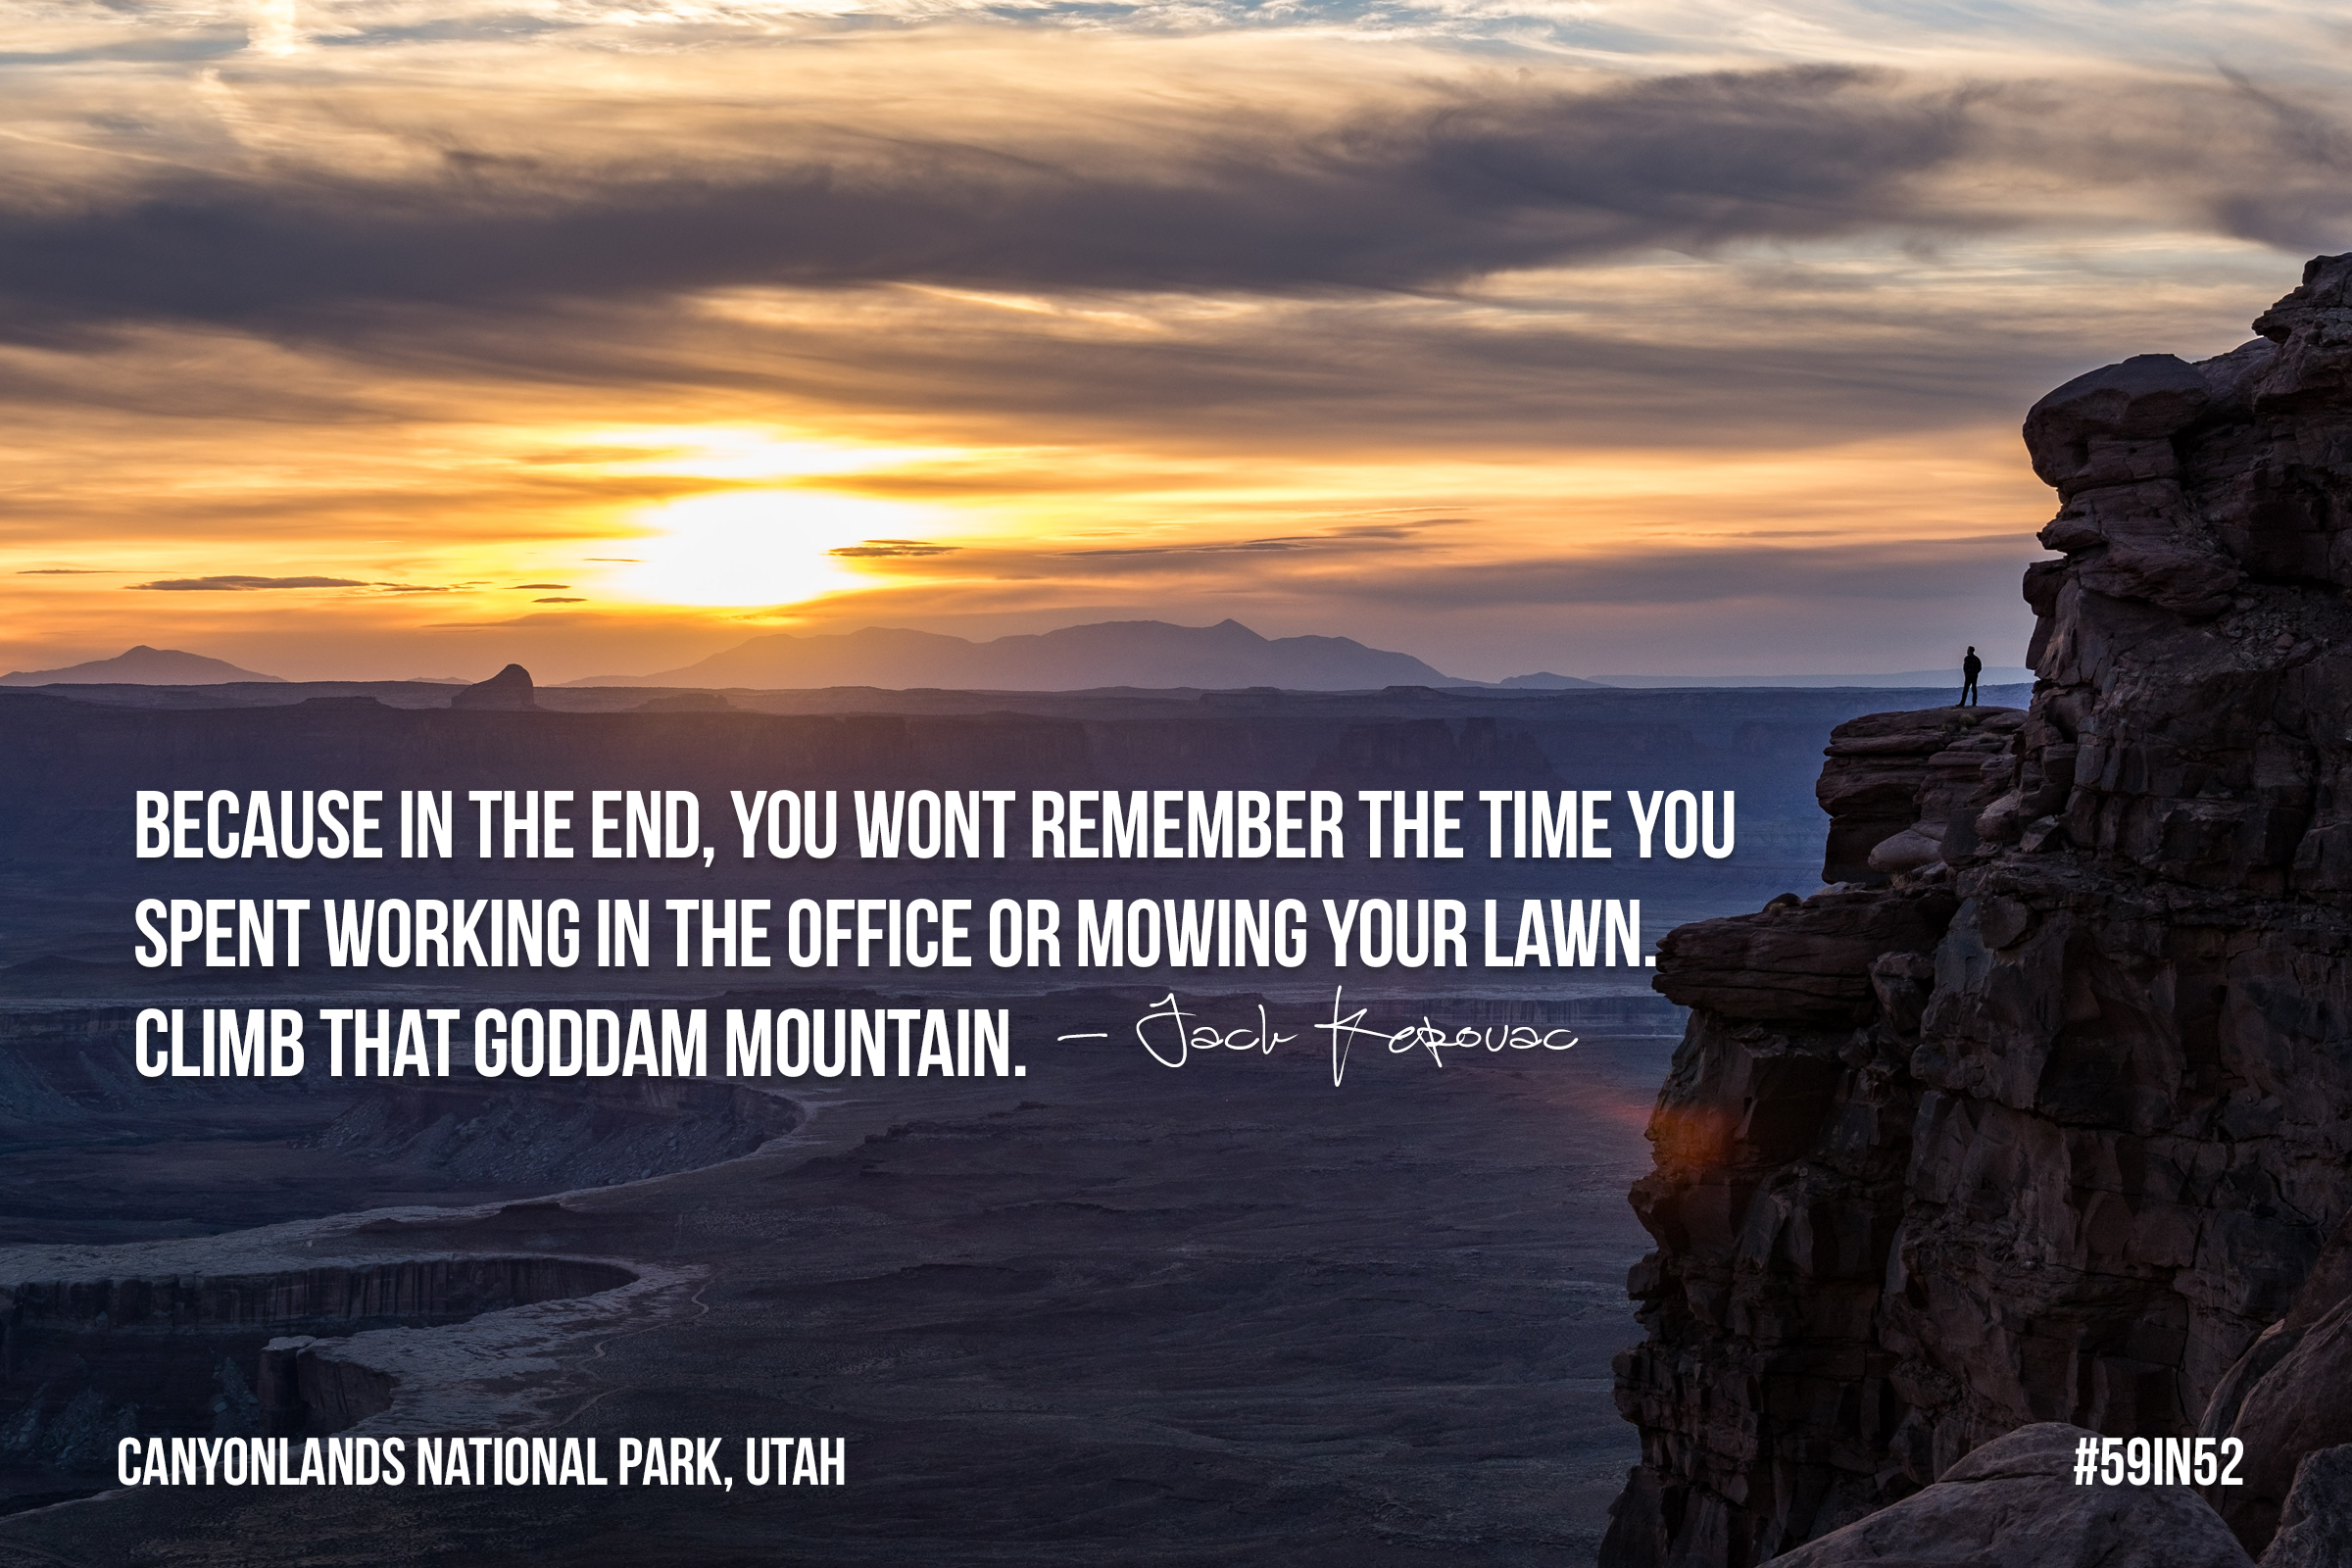 'Because in the end, you won't remember the time you spent working in the office or mowing your lawn. Climb that goddam mountain.' - Jack Kerouac